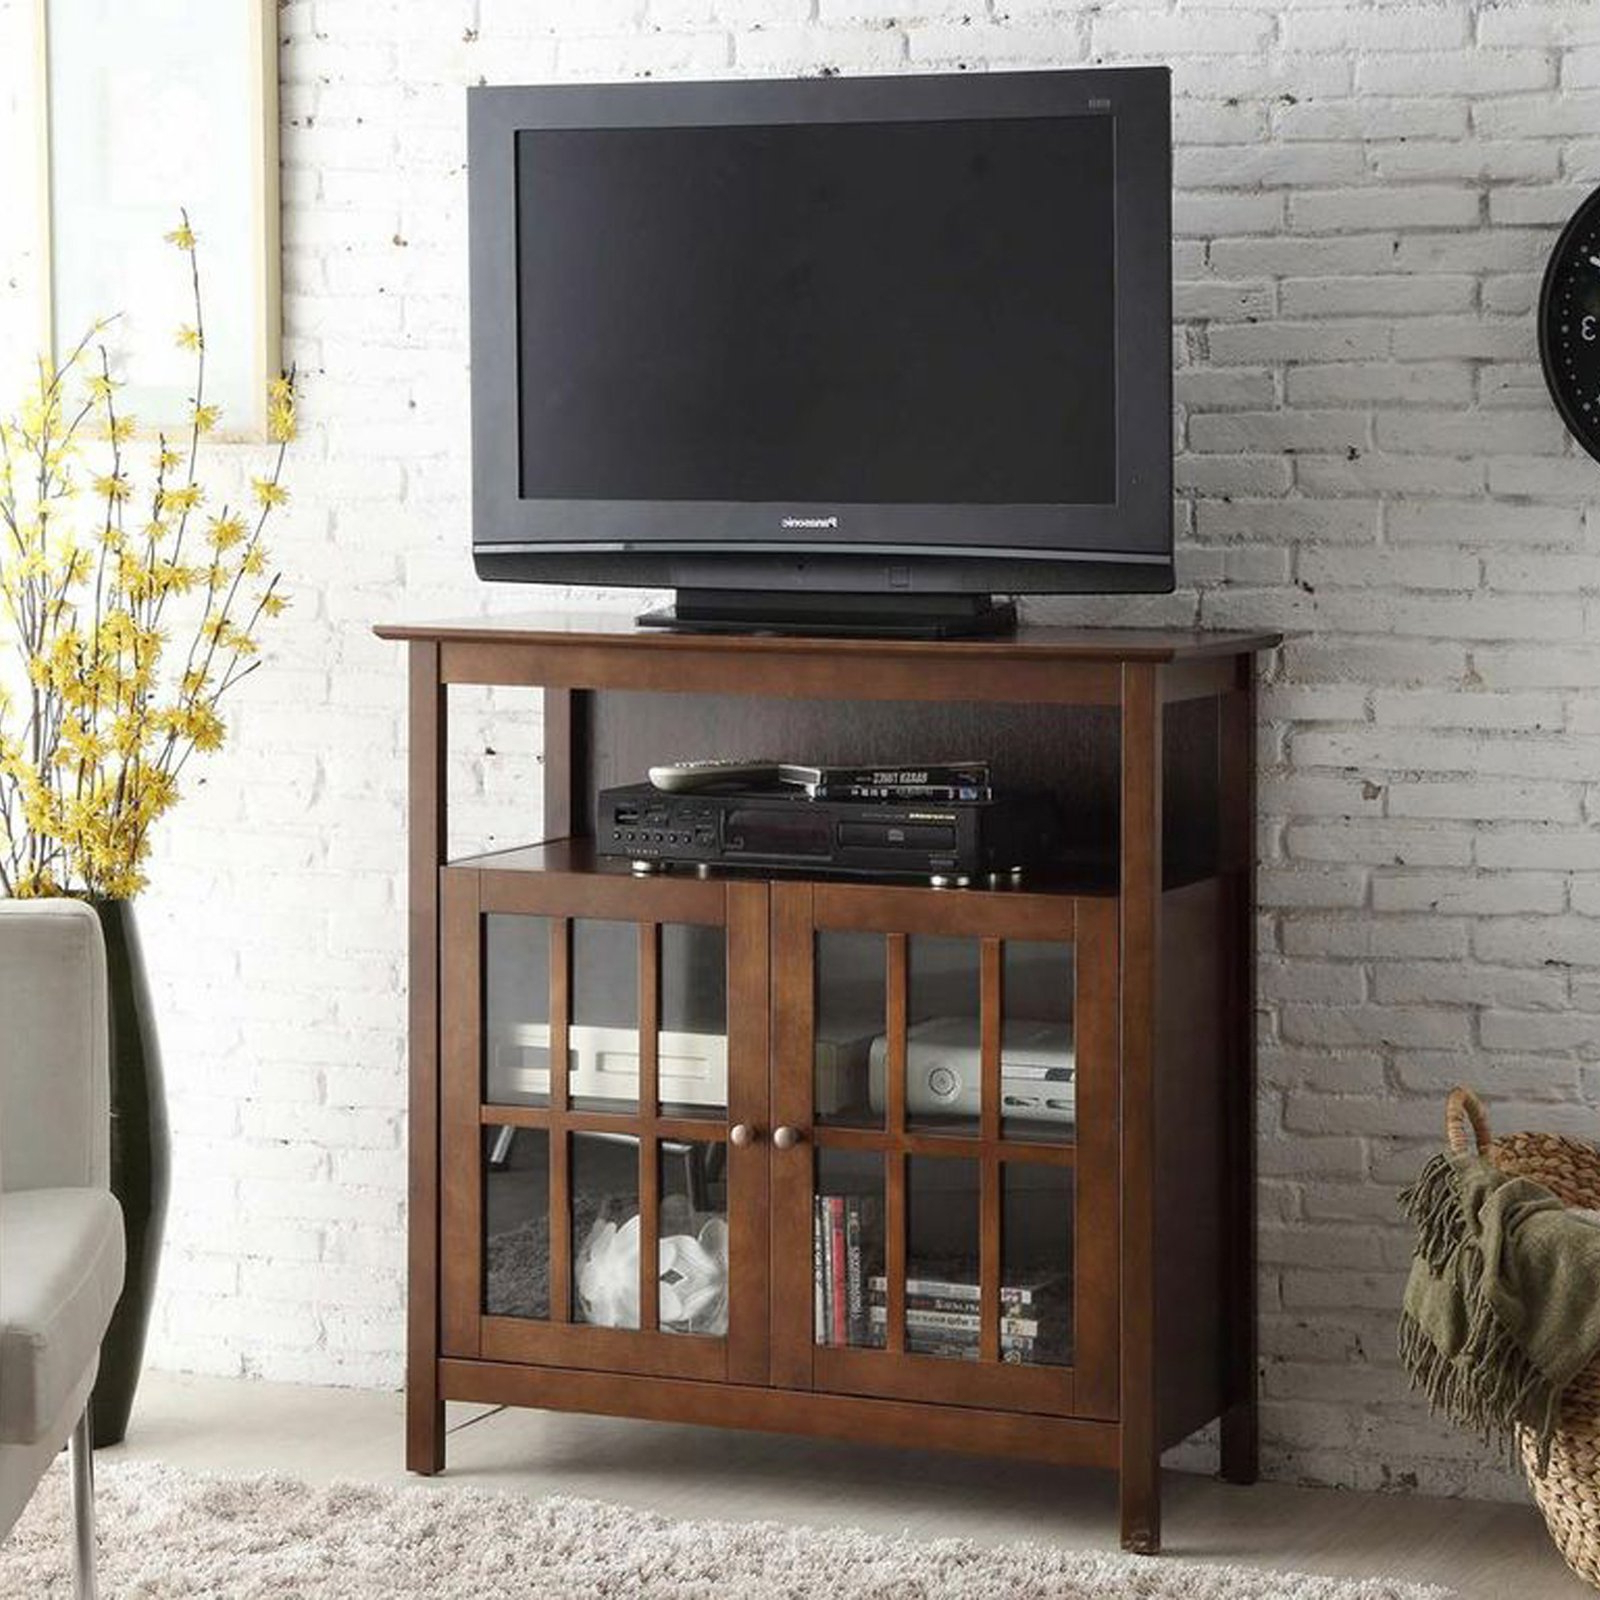 Famous Tv Stands 38 Inches Wide With Regard To Lovely 50 Inch Tv Stand For Your Tv – Furnish Ideas (View 4 of 20)